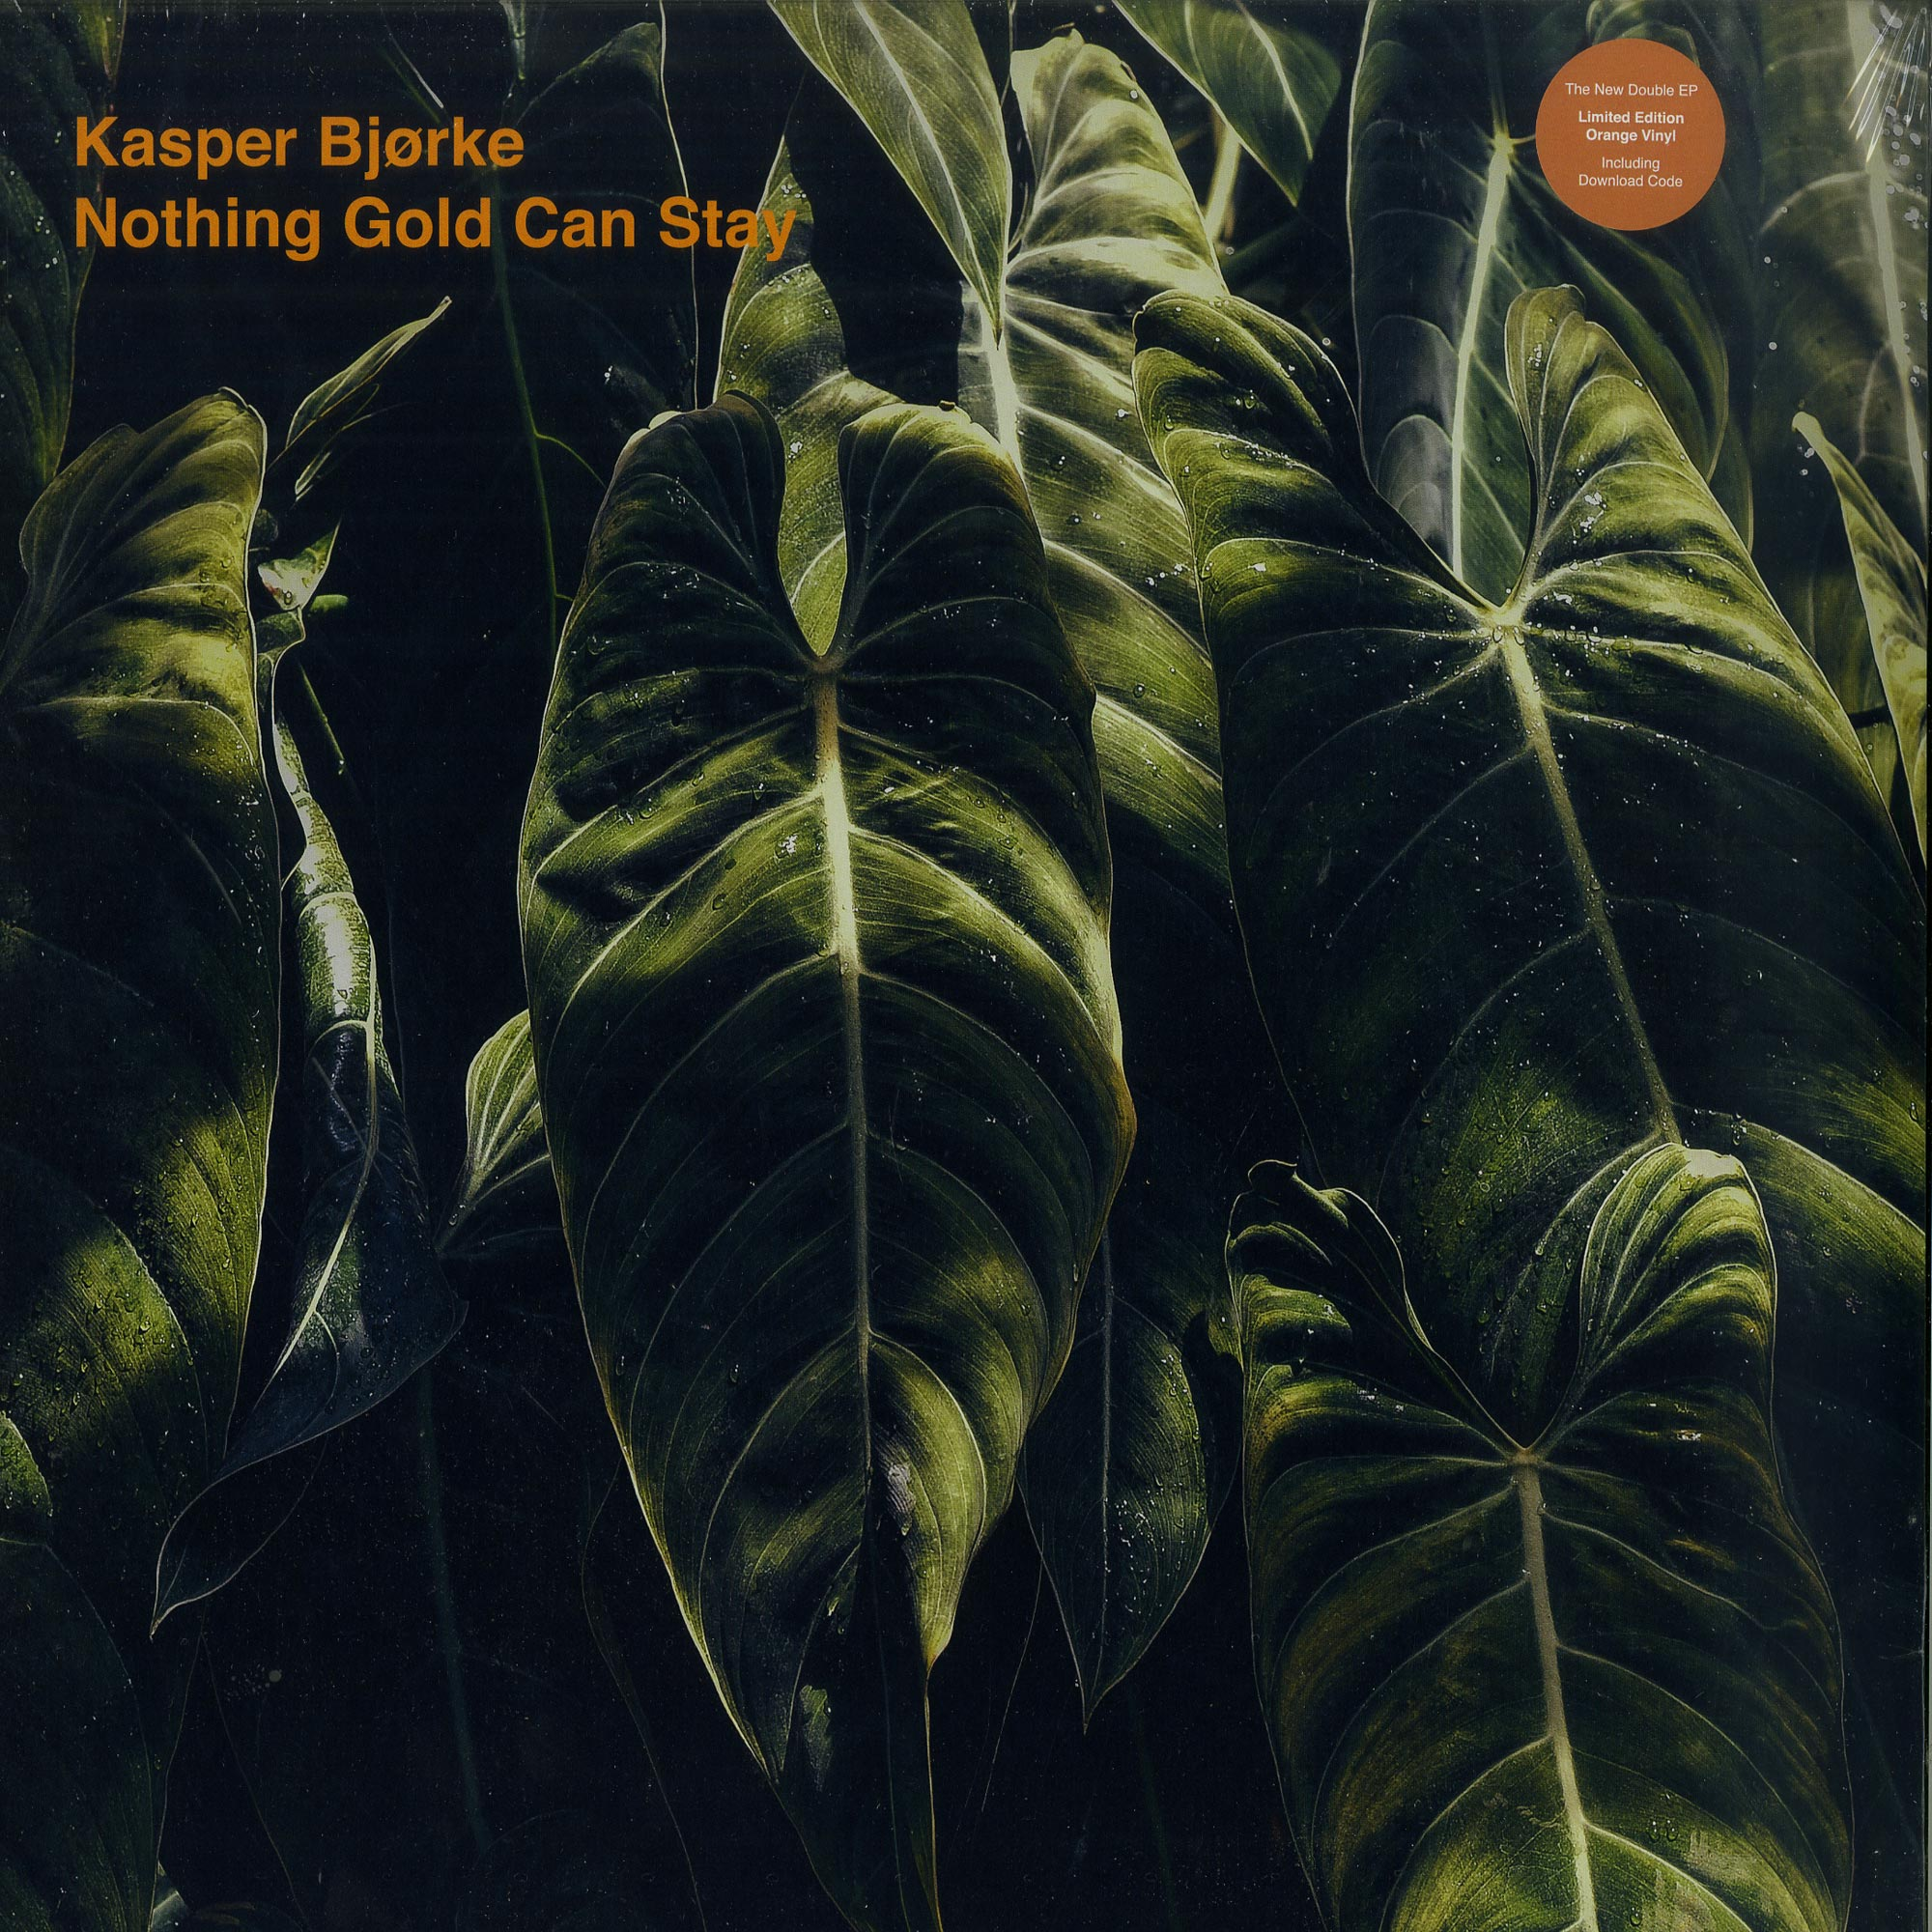 Kasper Bjorke - NOTHING GOLD CAN STAY